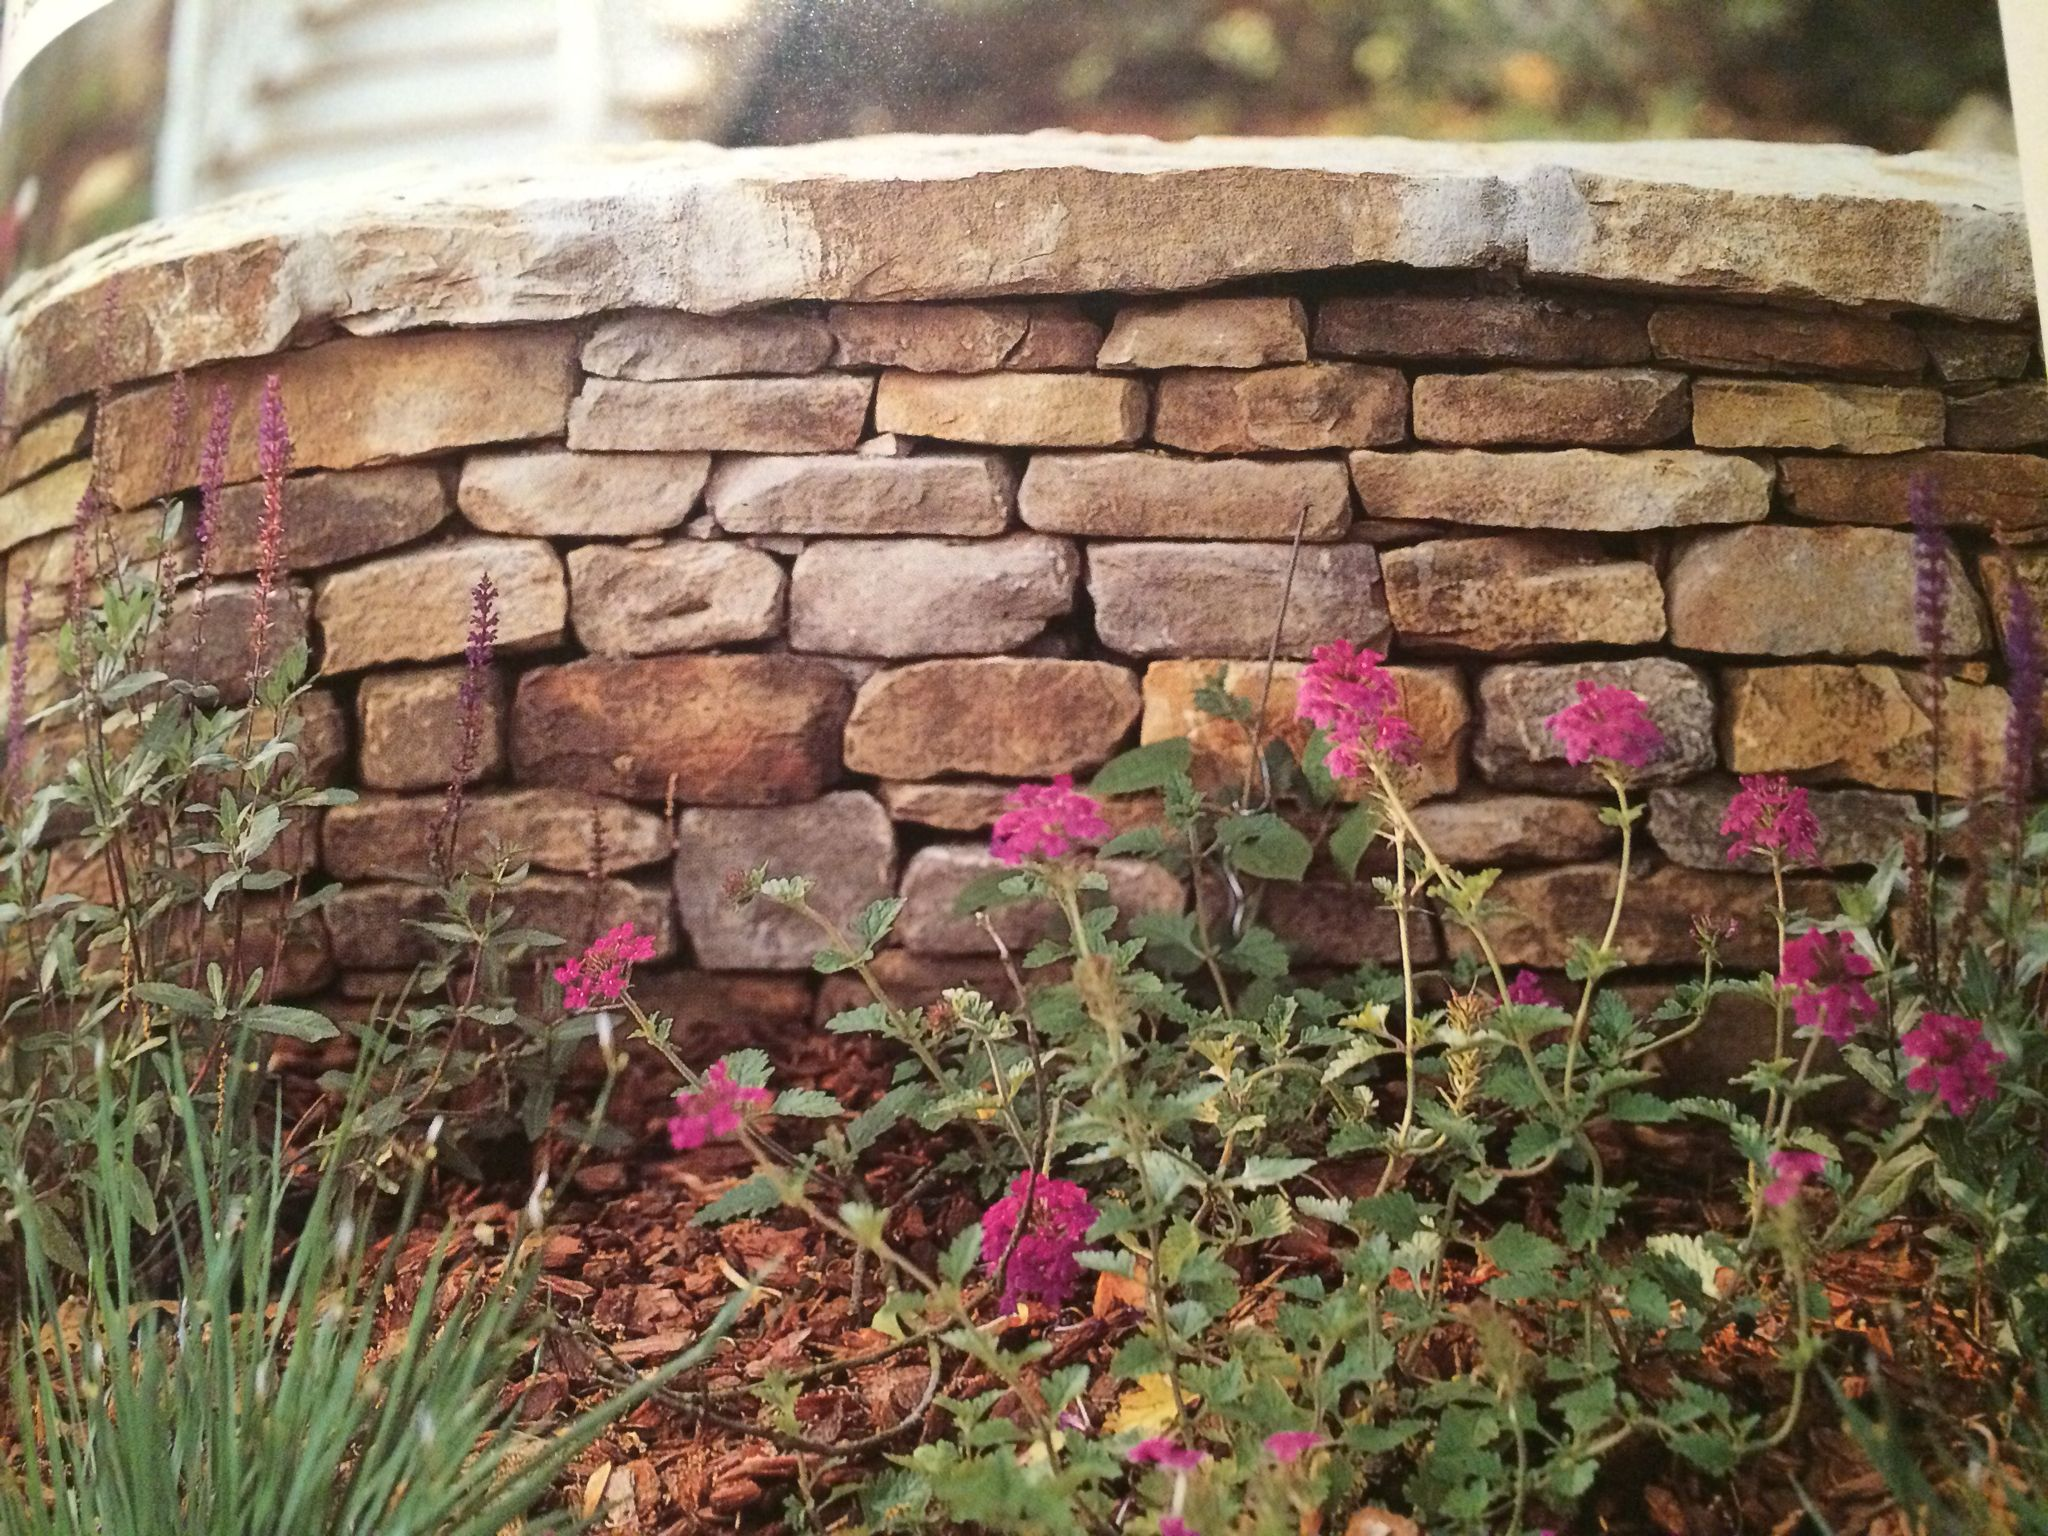 Stone wall with capstone | Garden patios and Decks | Pinterest ...